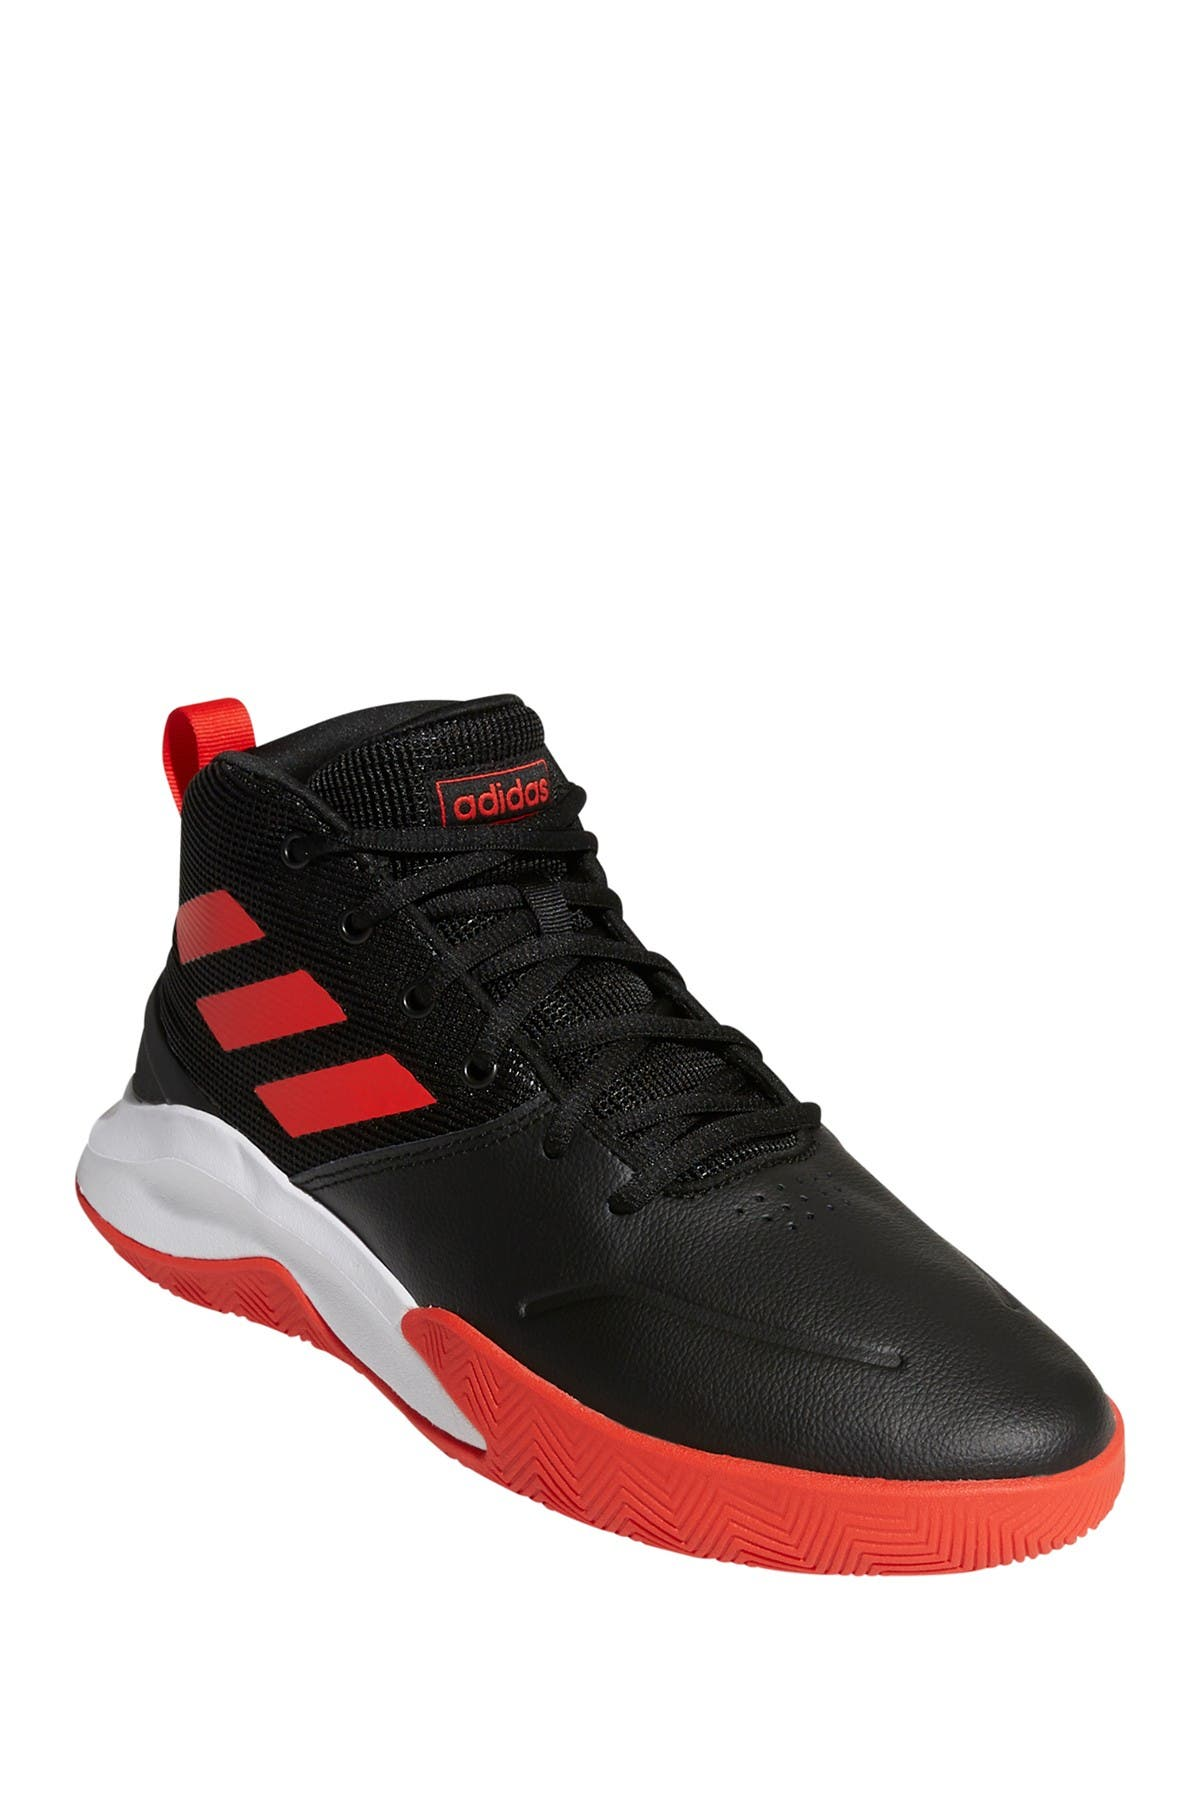 Image of adidas Own The Game Basketball Sneakers